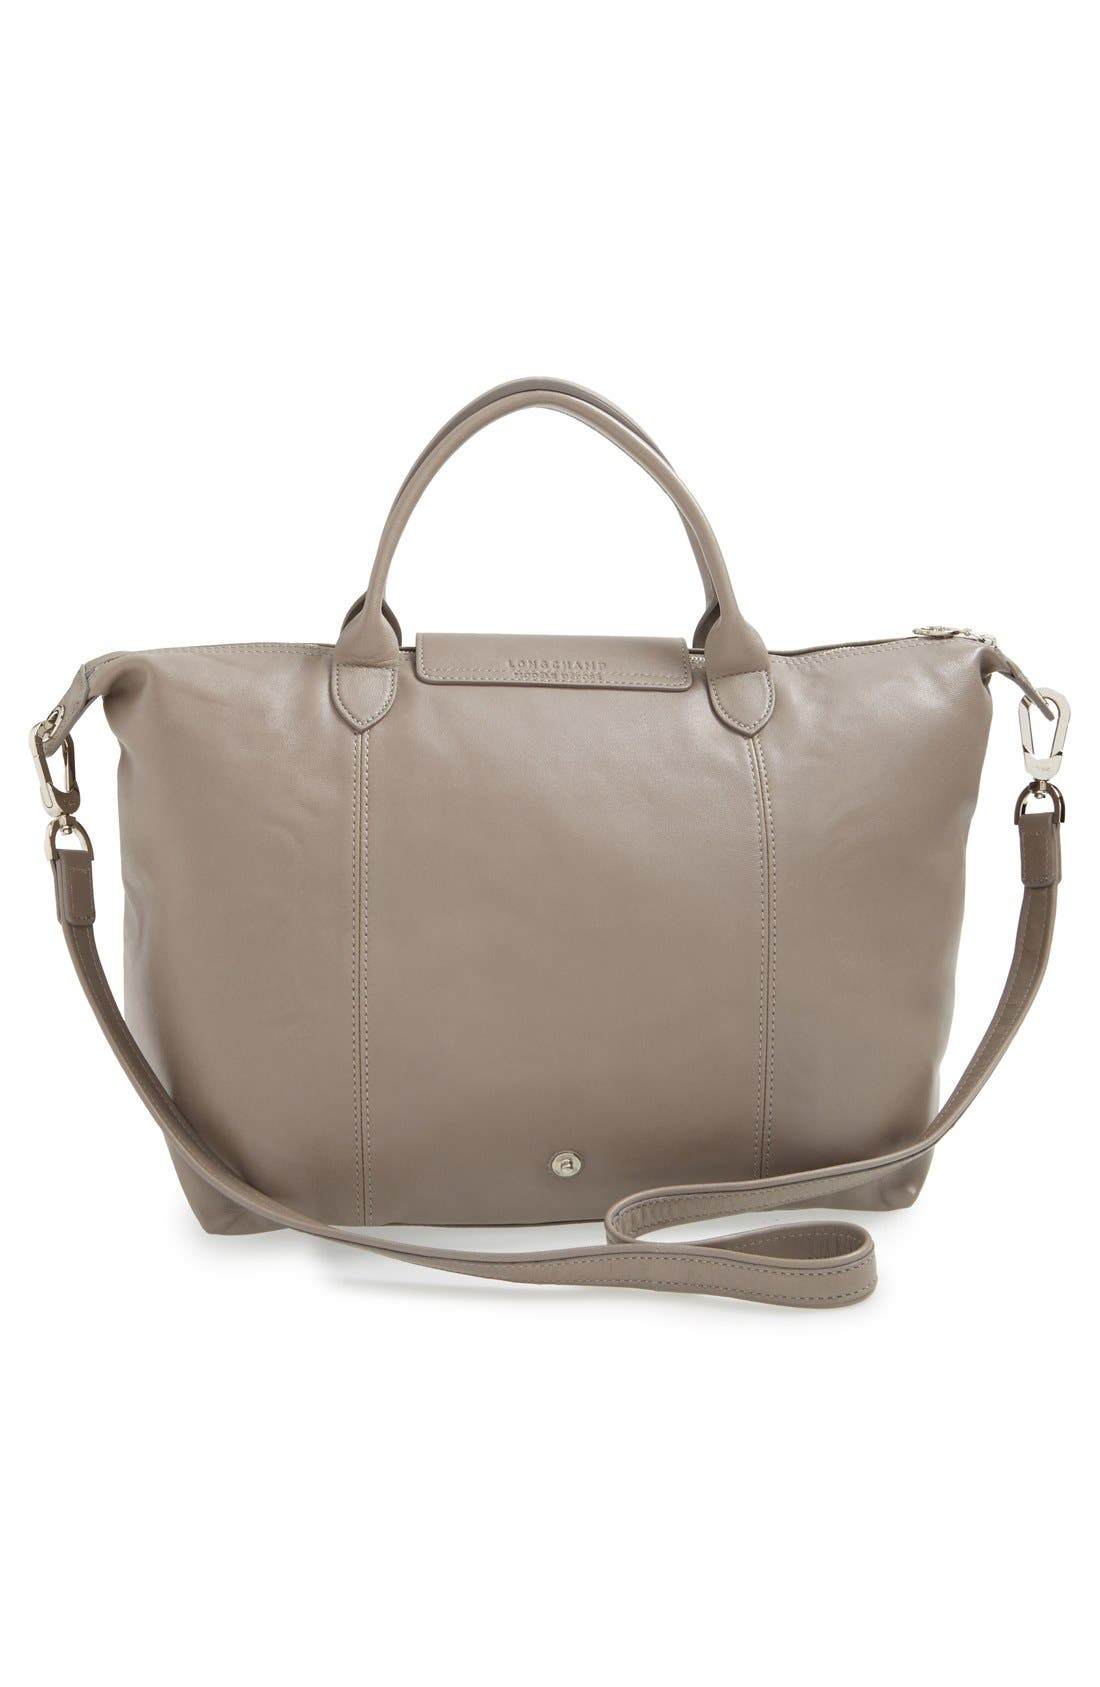 Medium 'Le Pliage Cuir' Leather Top Handle Tote,                             Alternate thumbnail 58, color,